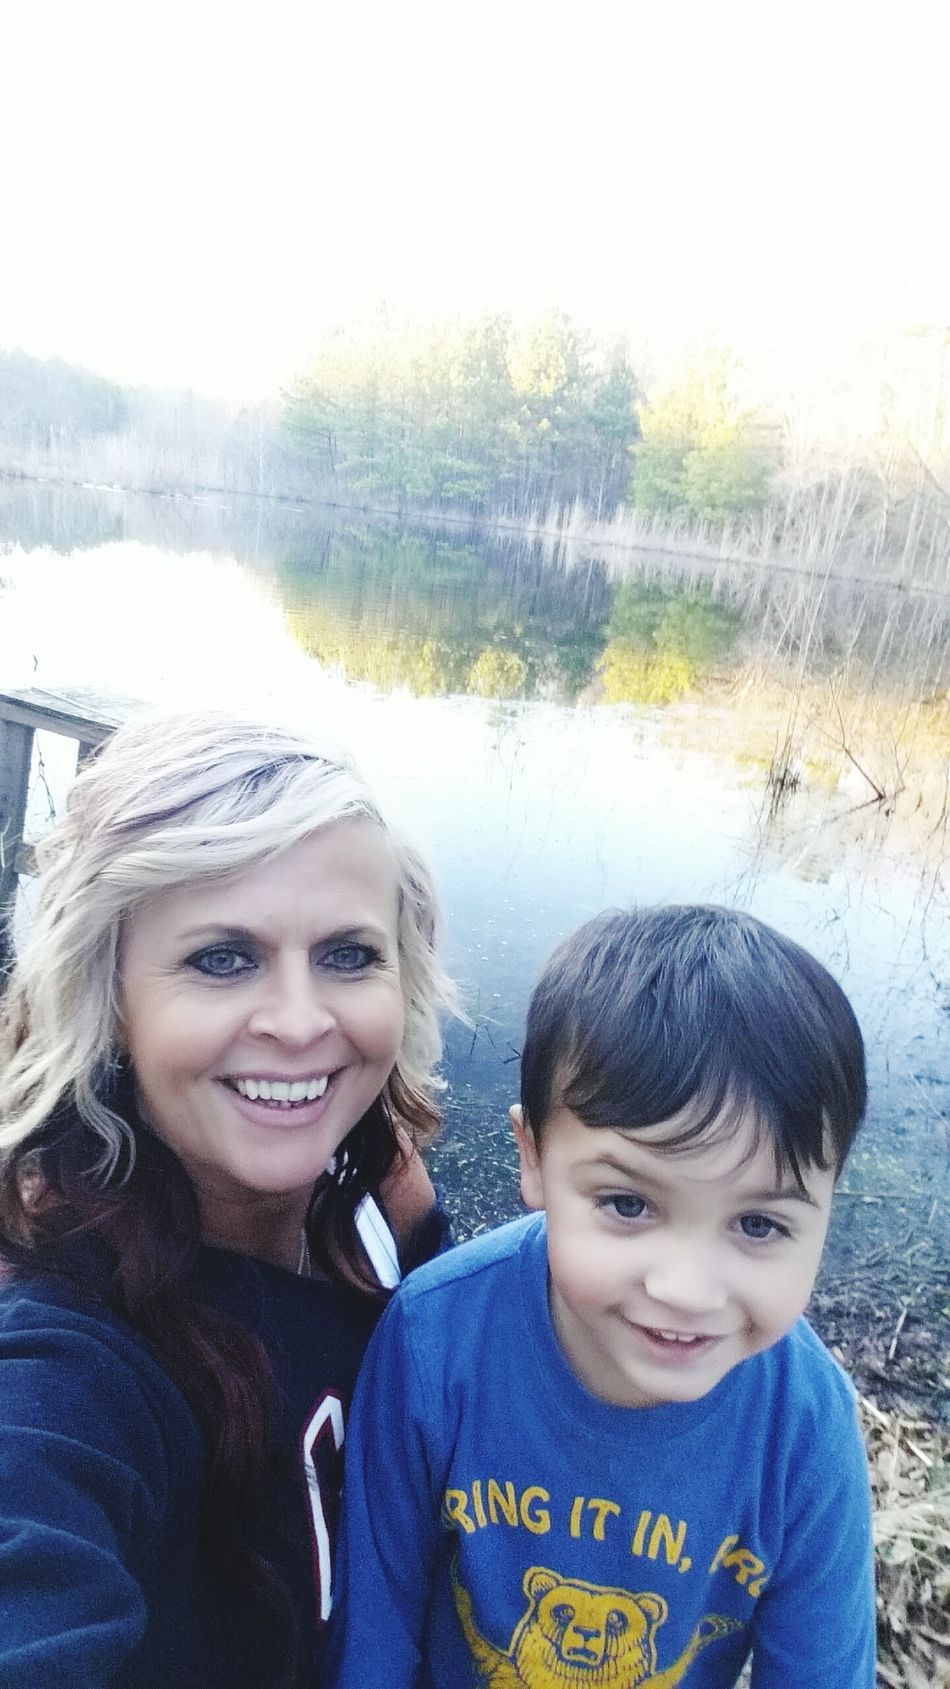 We love to walk down to the pond. Love Our Home Our Favorite Place He Has My Heart❤